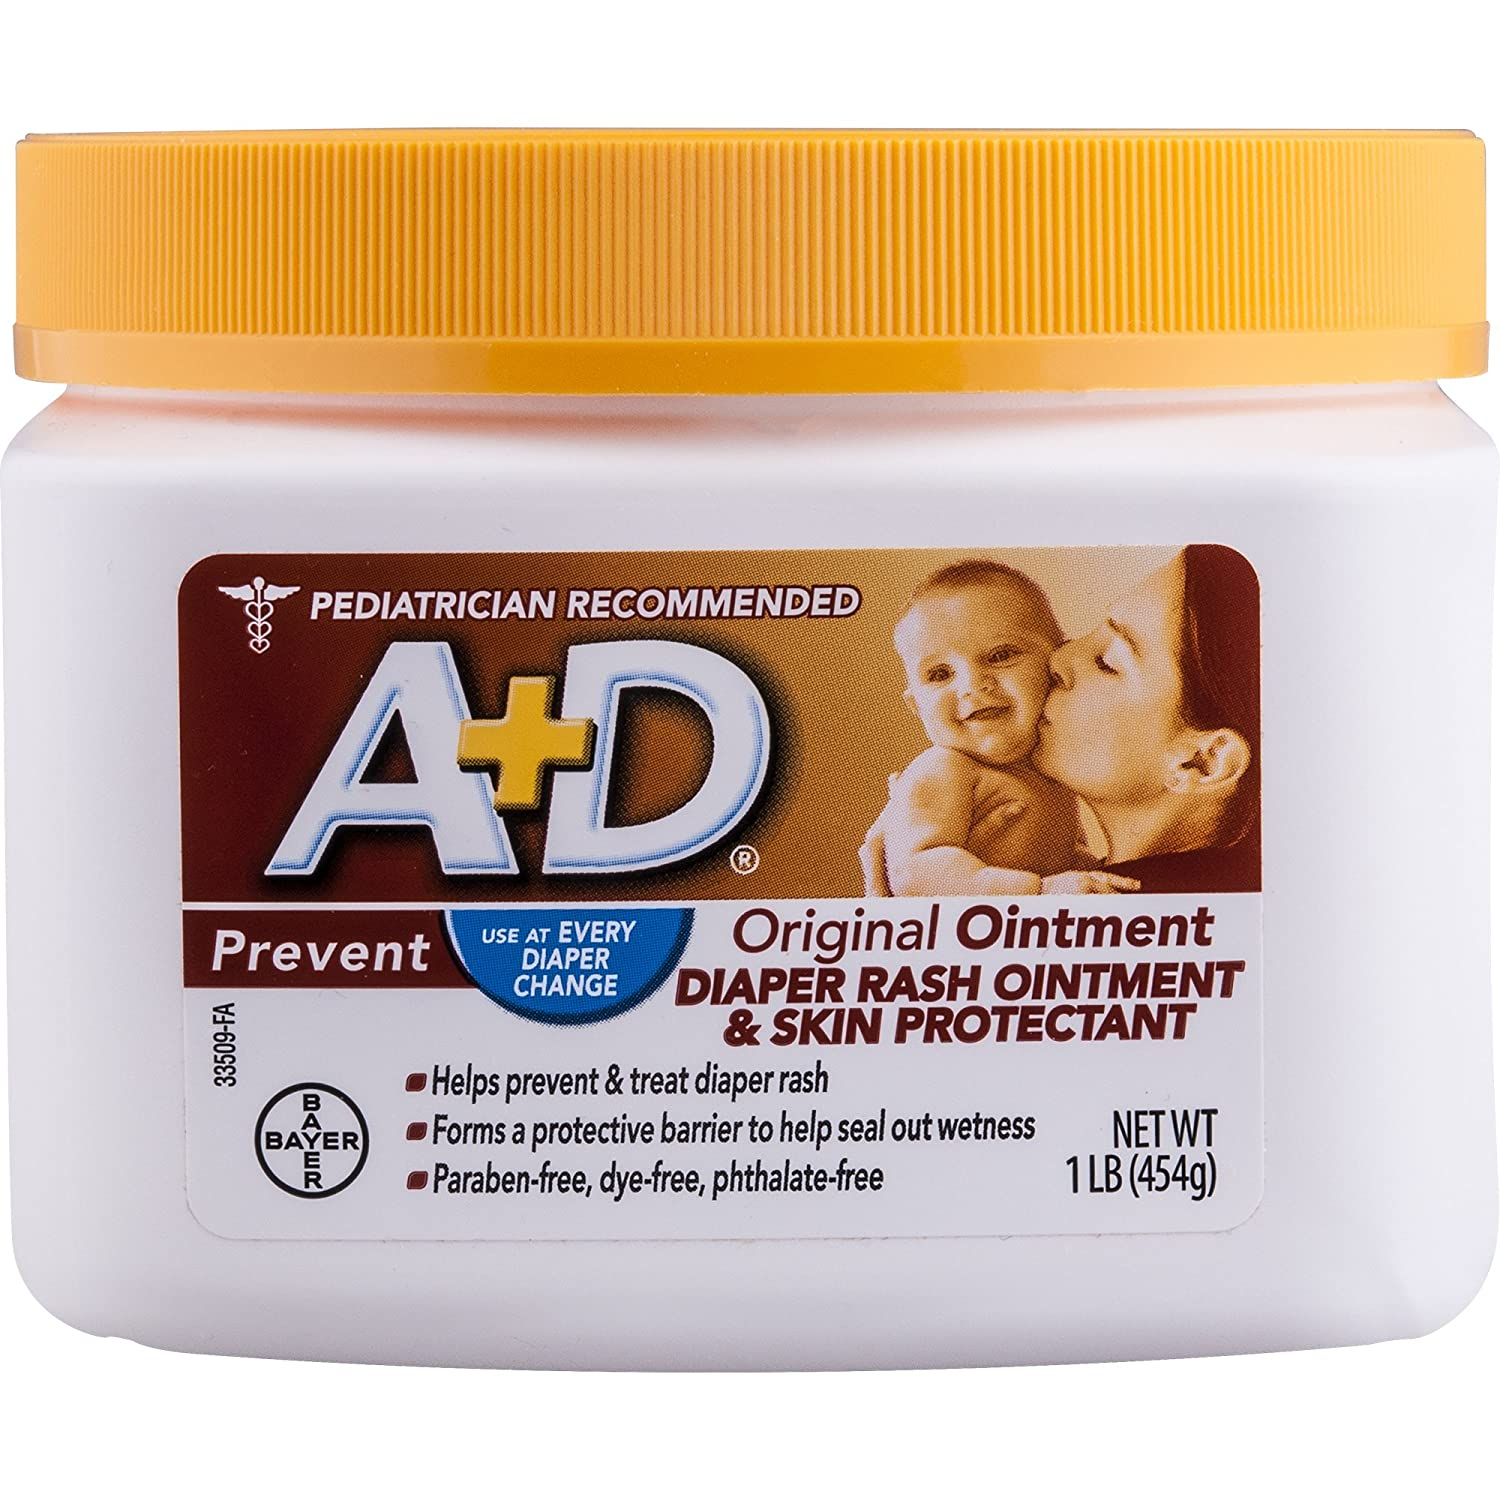 A+D Original Diaper Rash Ointment - 16 oz. 772933